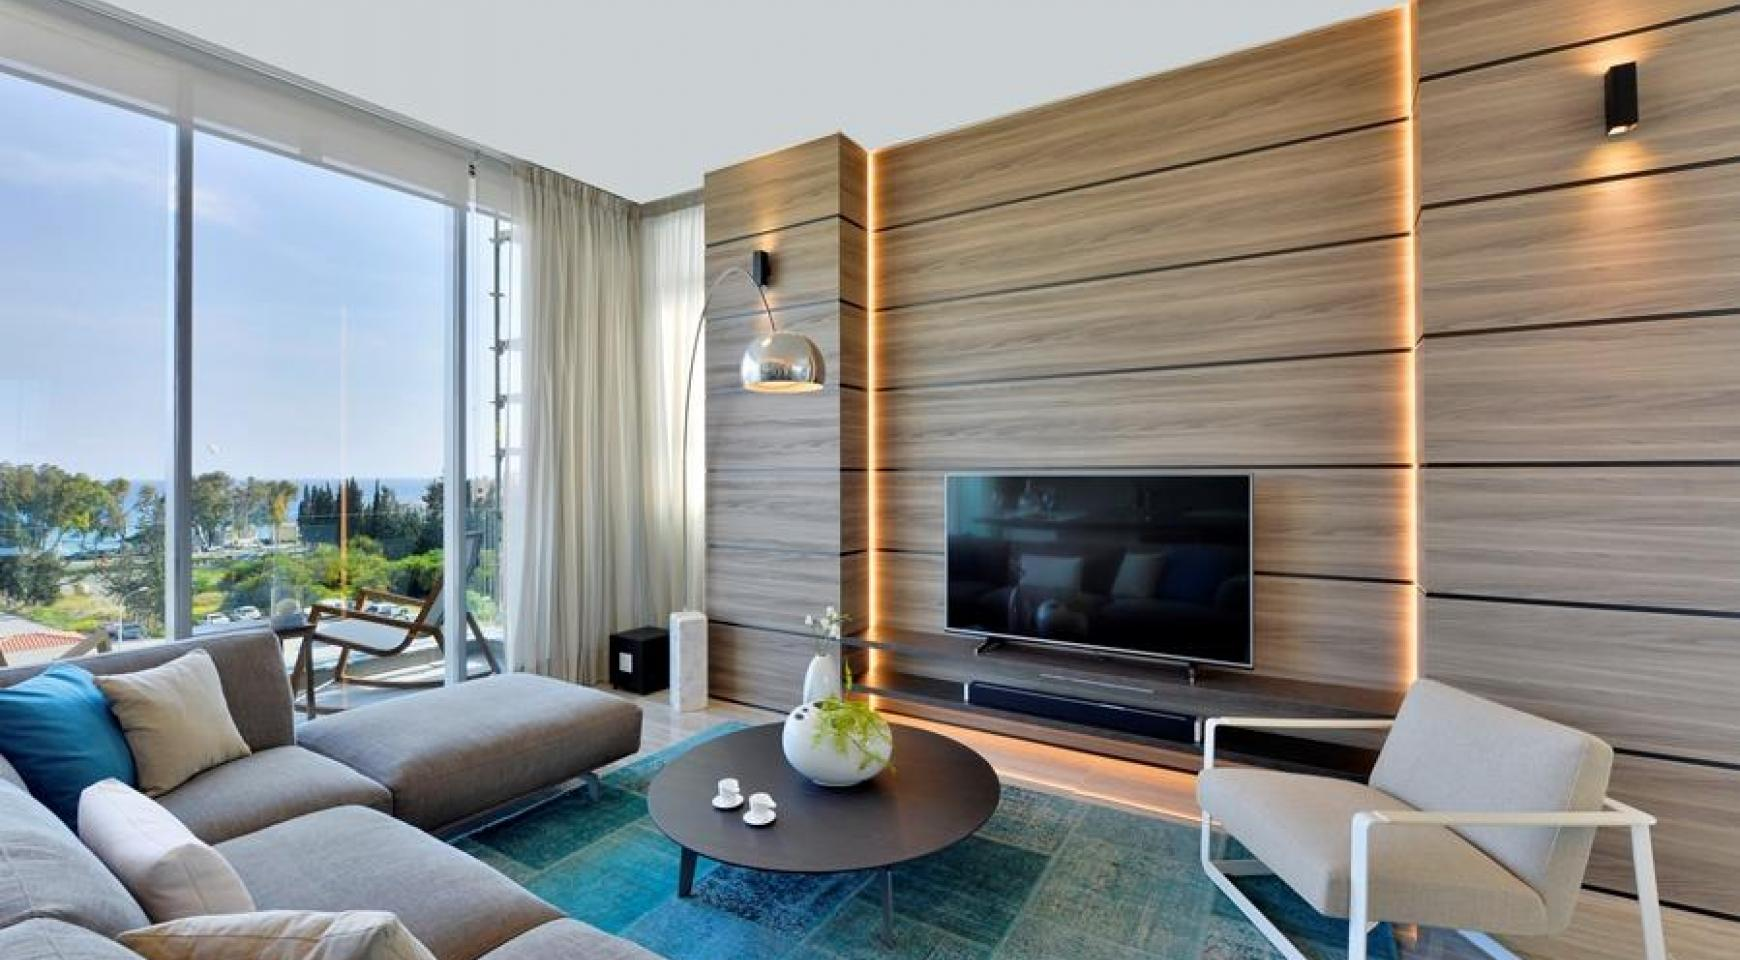 Luxury Duplex Penthouse with Private Roof Garden near the Sea - 3